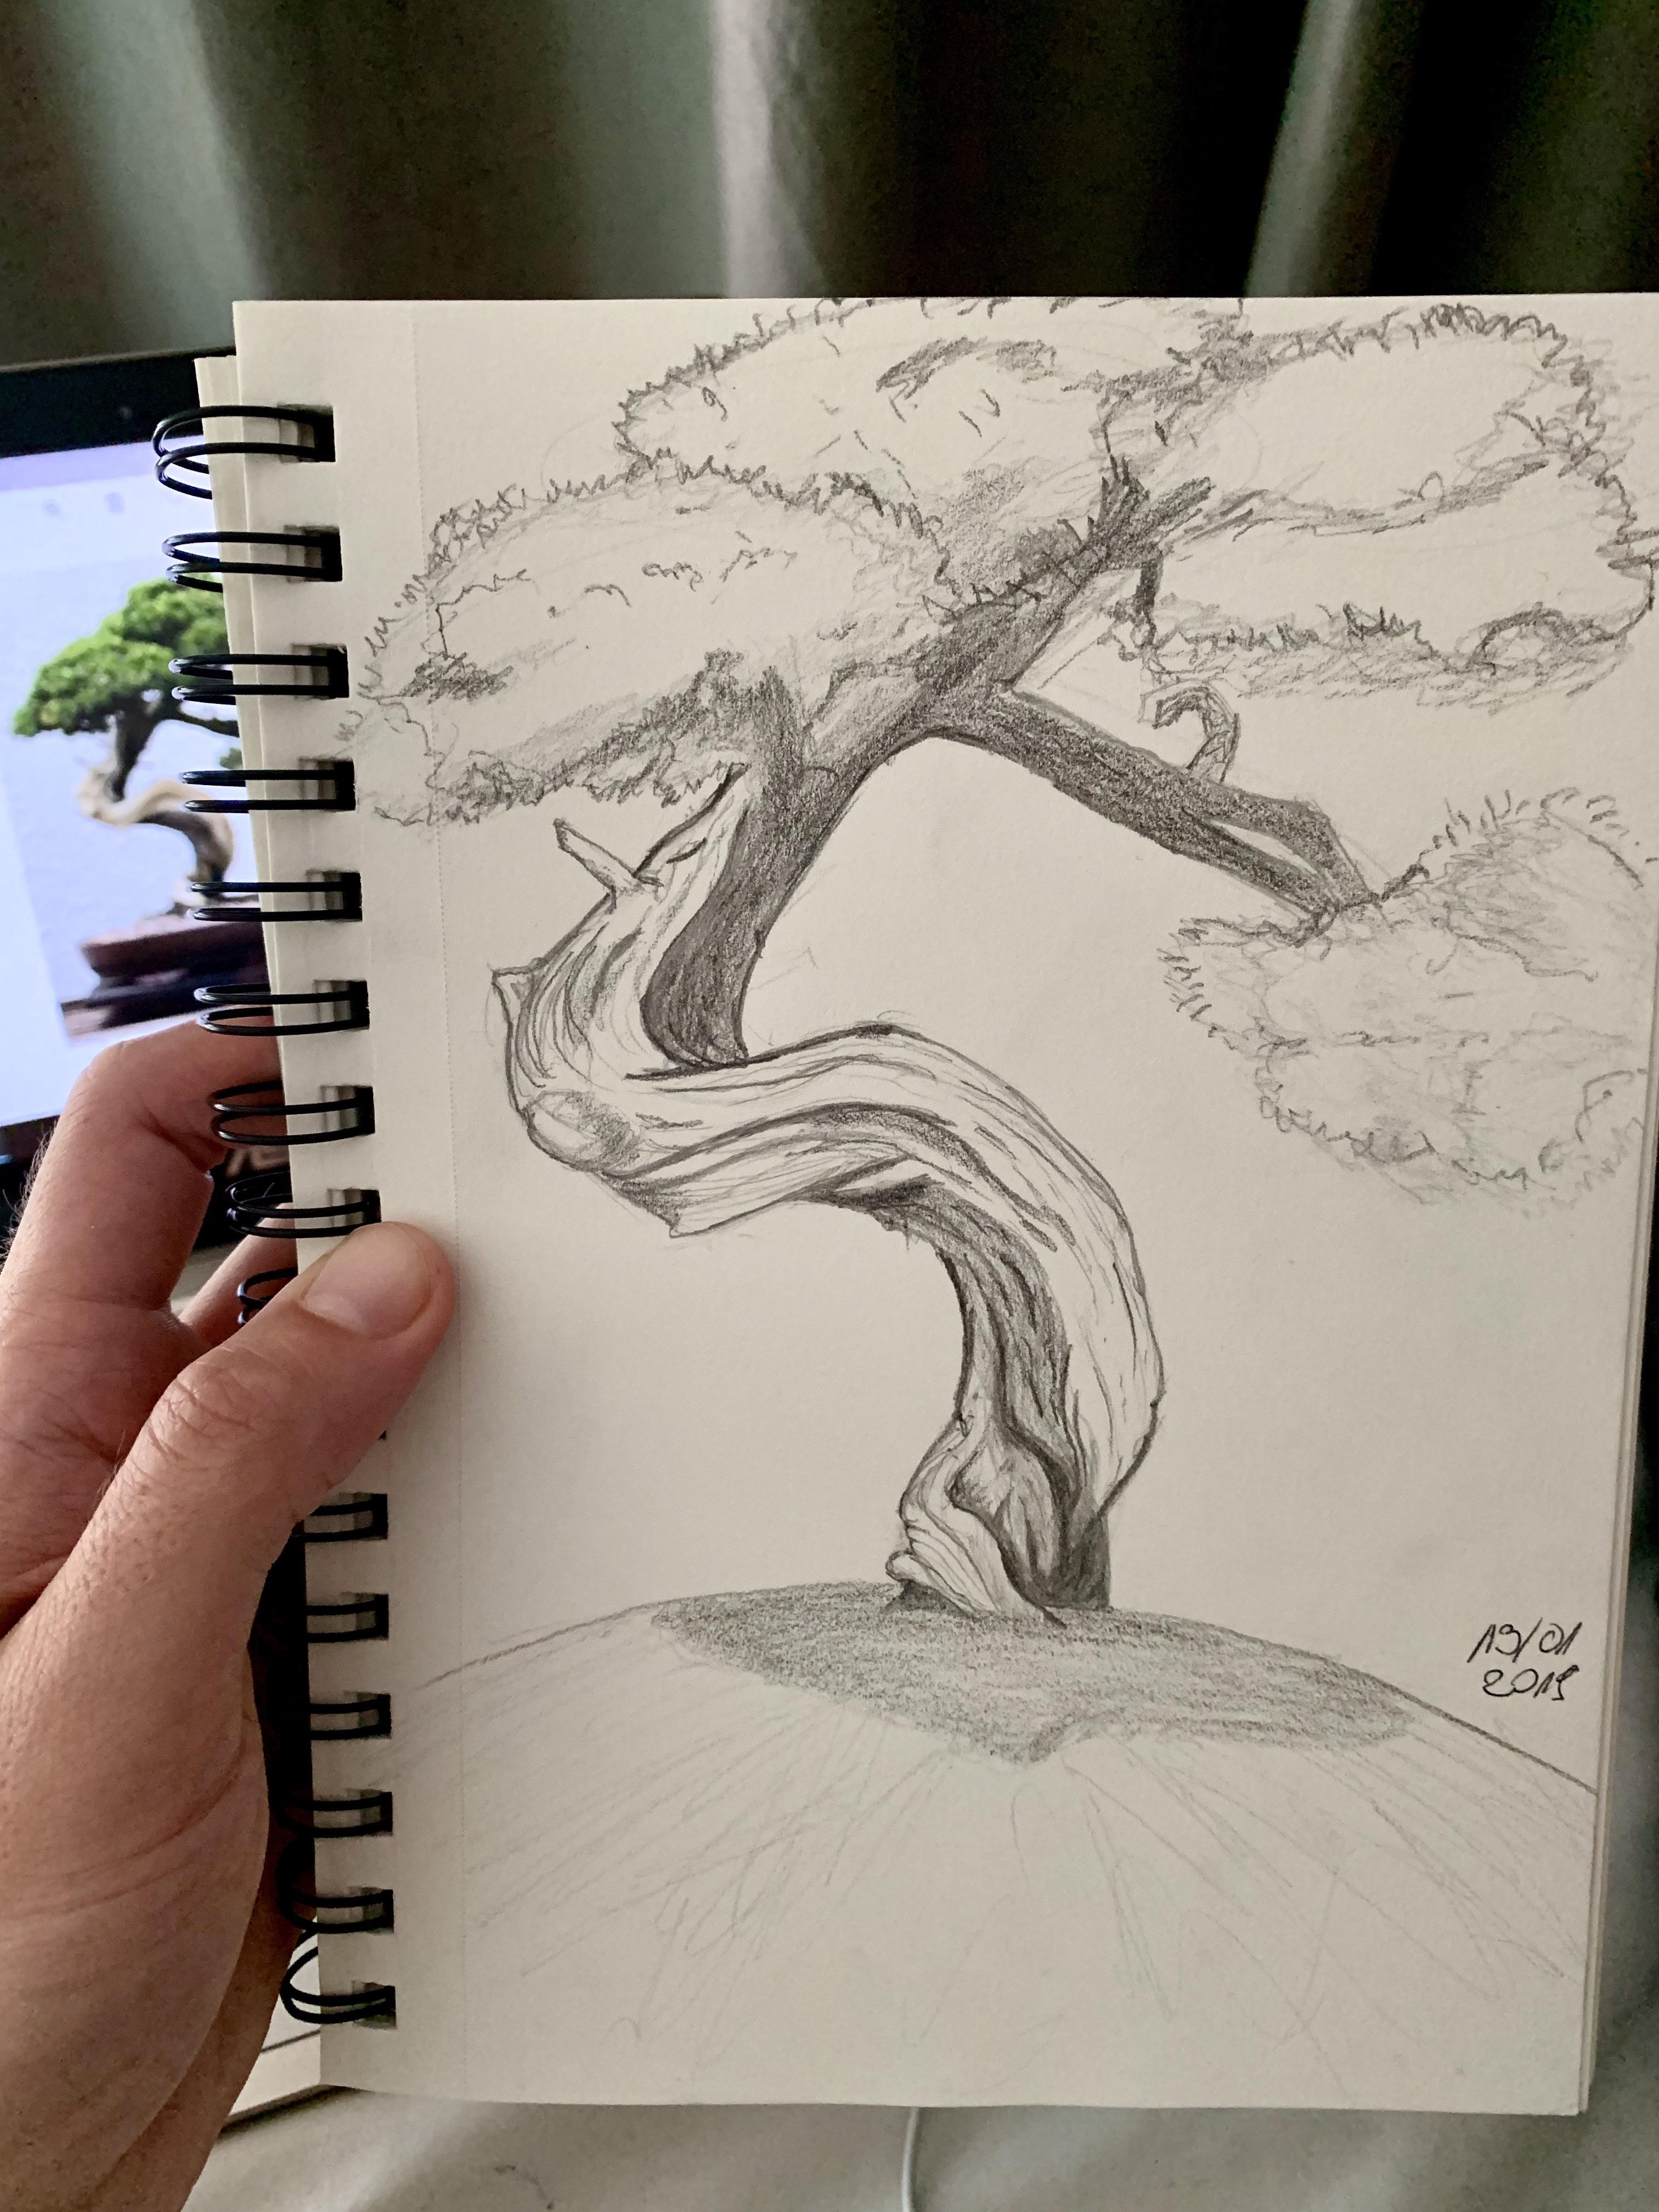 Bonsai Drawing : bonsai, drawing, Bonsai, Sketch, Today's, Practice, Learntodraw